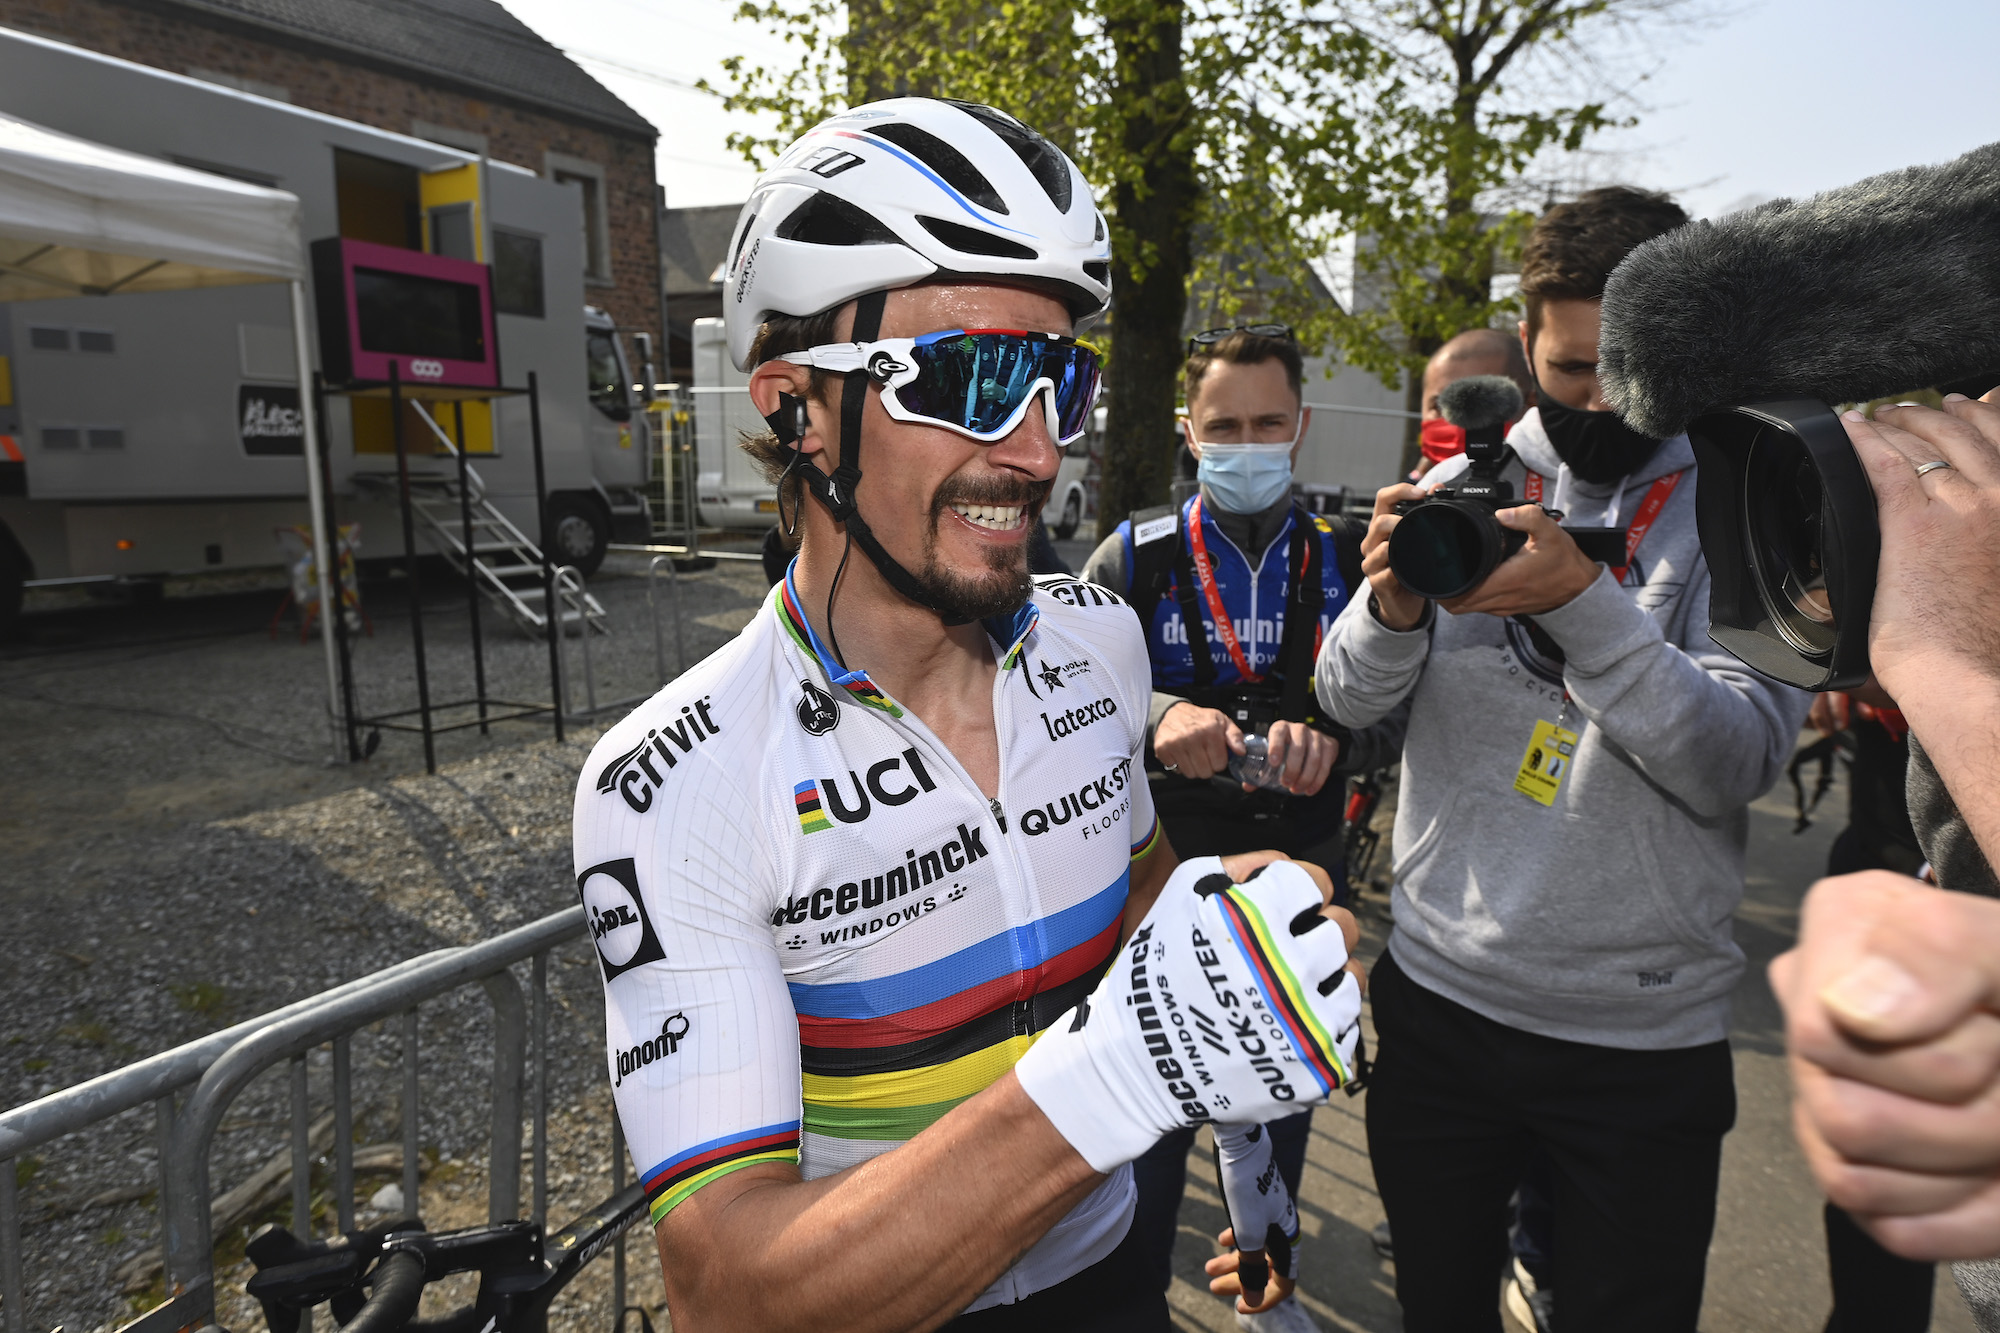 'This one really feels good': Julian Alaphilippe relieved after taking 'important' victory at La Flèche Wallonne 2021